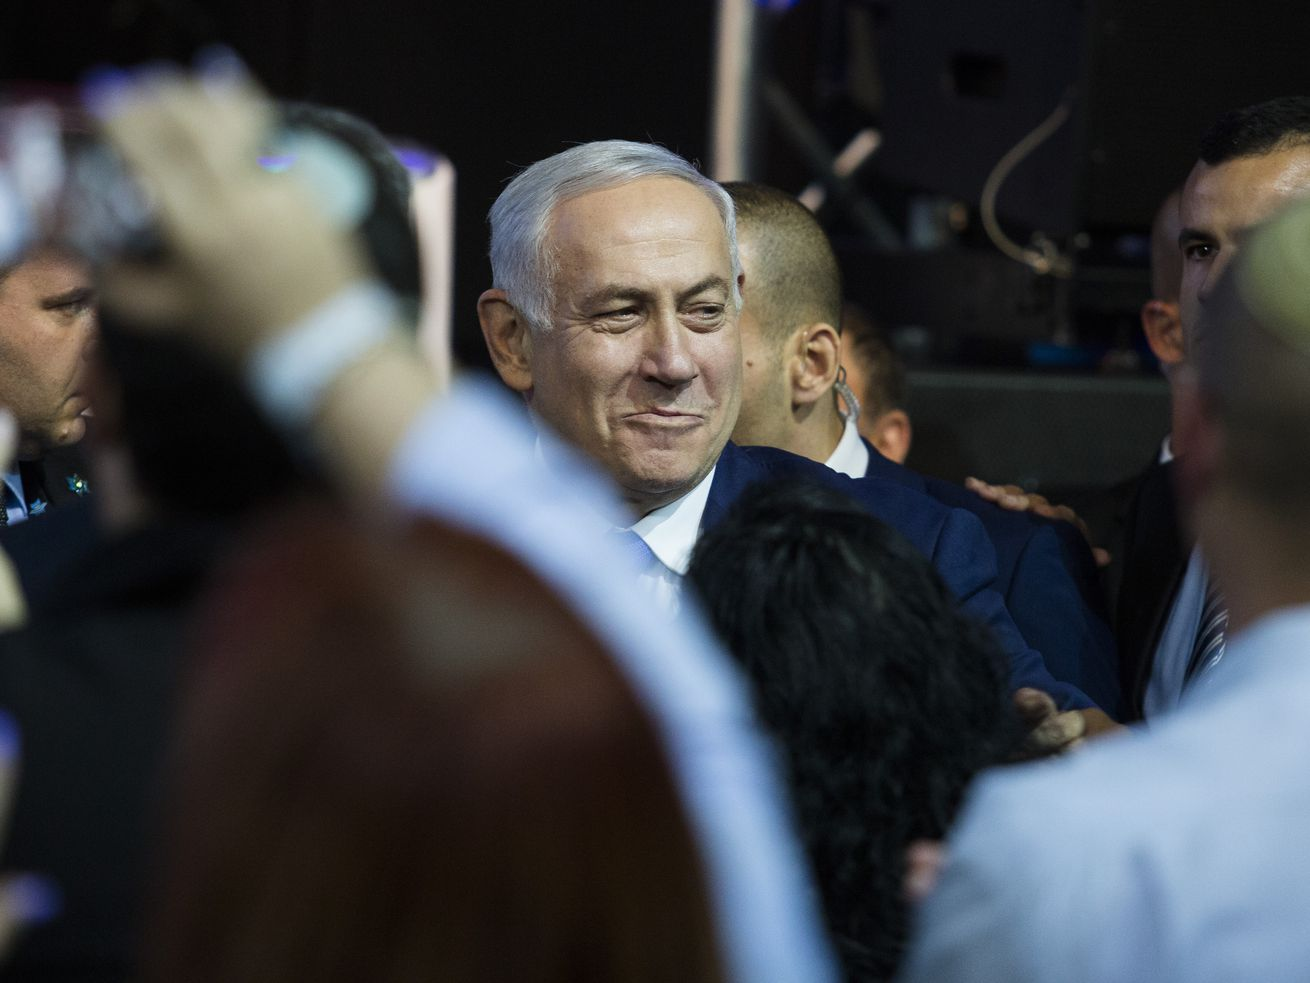 Prime Minister Benjamin Netanyahu after his victory in April 9. Israel will now have elections, again.